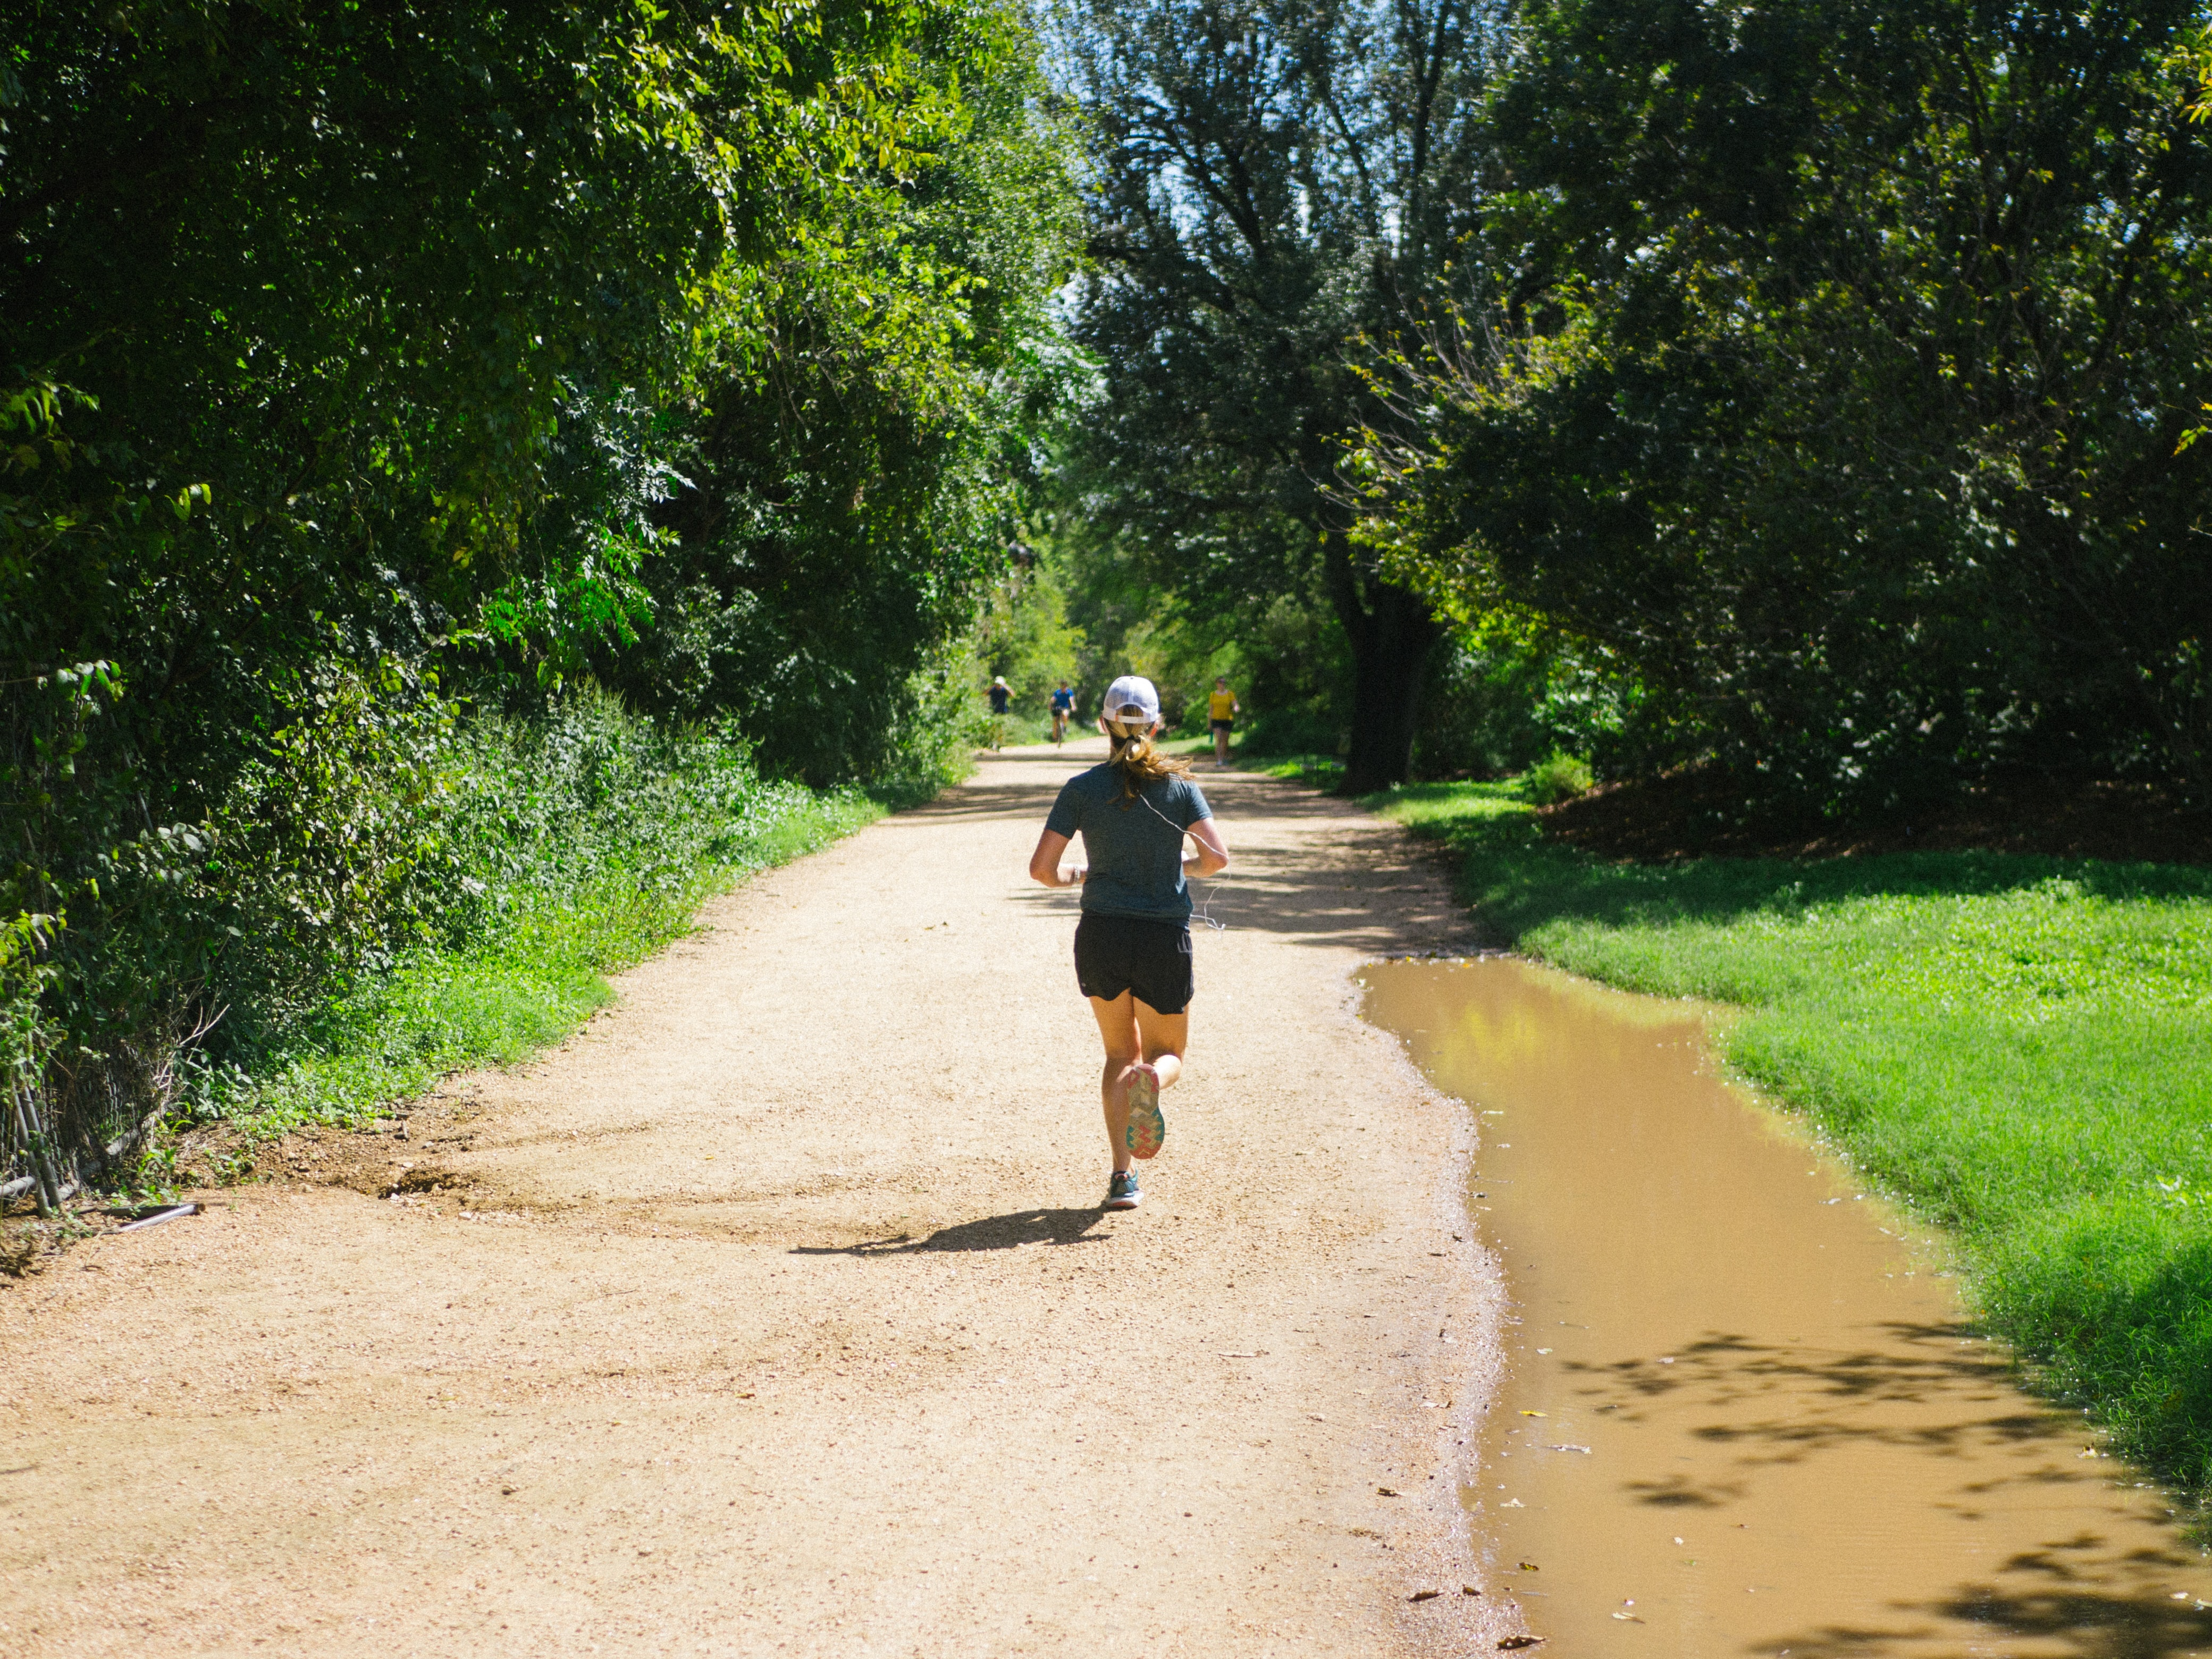 woman in blue shirt running on dirt pathway